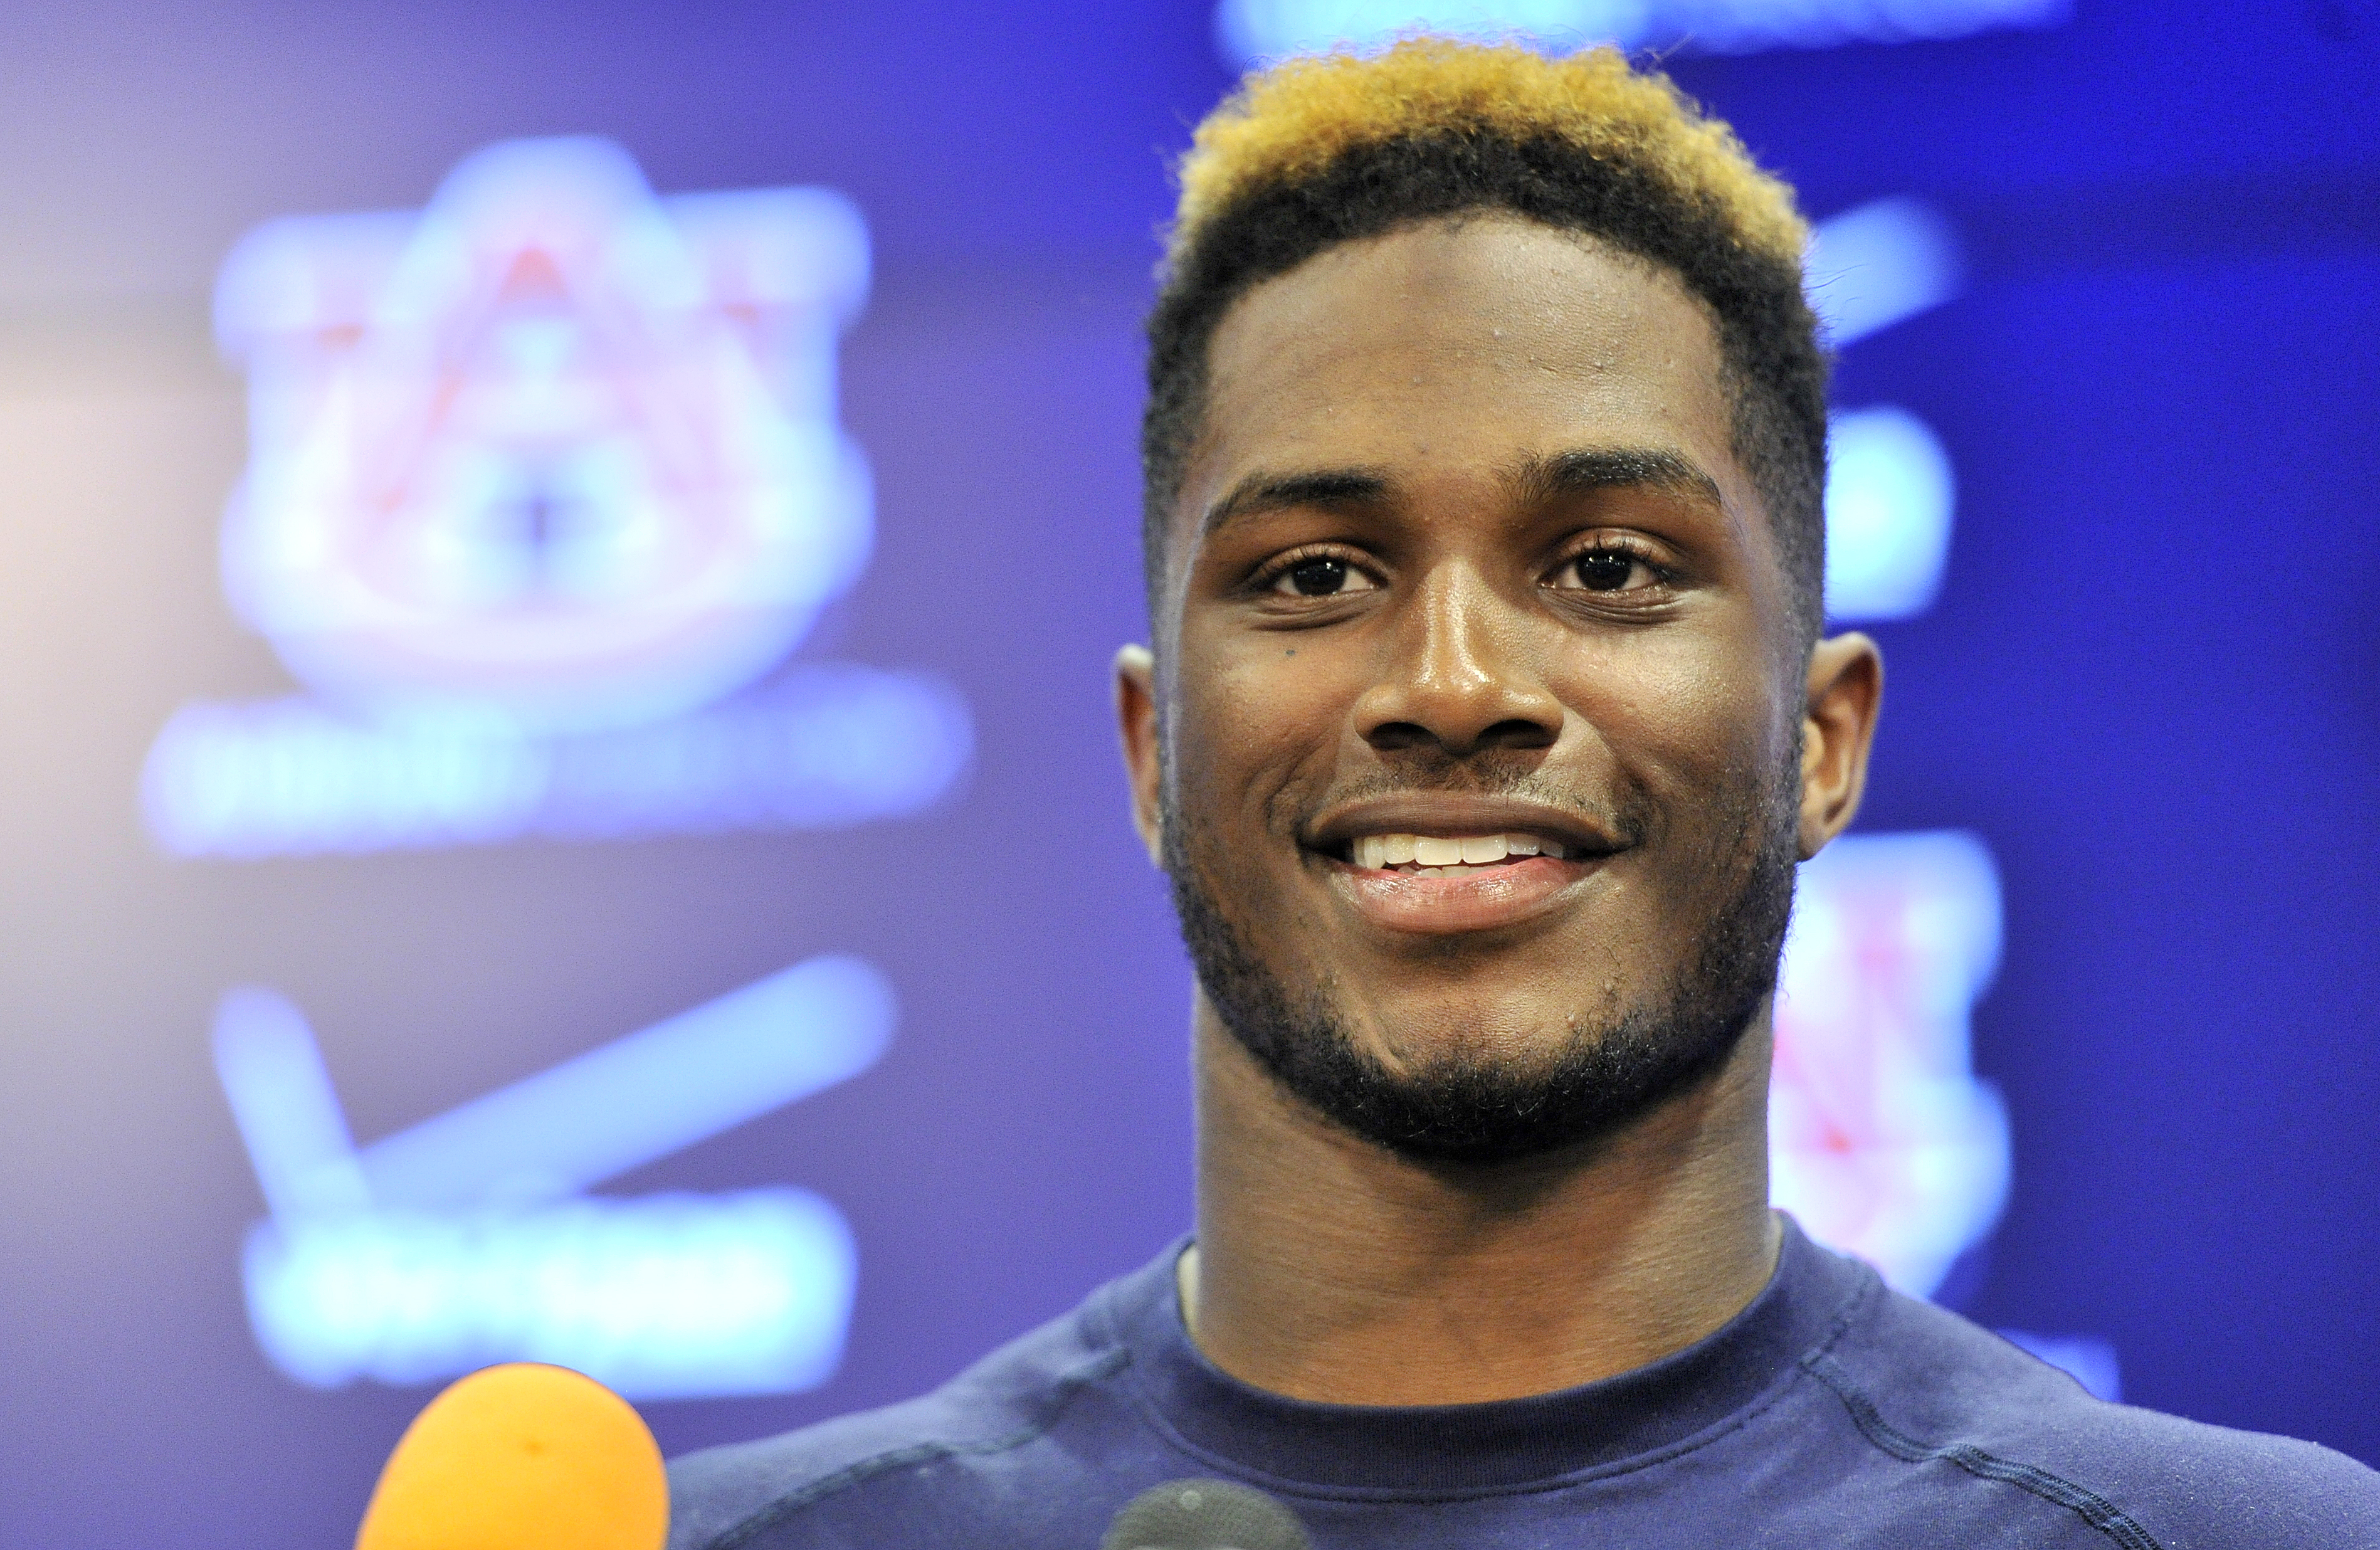 In this photo taken Tuesday, Aug. 25, 2015, Auburn defensive back Blake Countess talks to members of the media after NCAA college football practice in Auburn, Ala. (Julie Bennett/AL.com via AP) MAGAZINES OUT; MANDATORY CREDIT